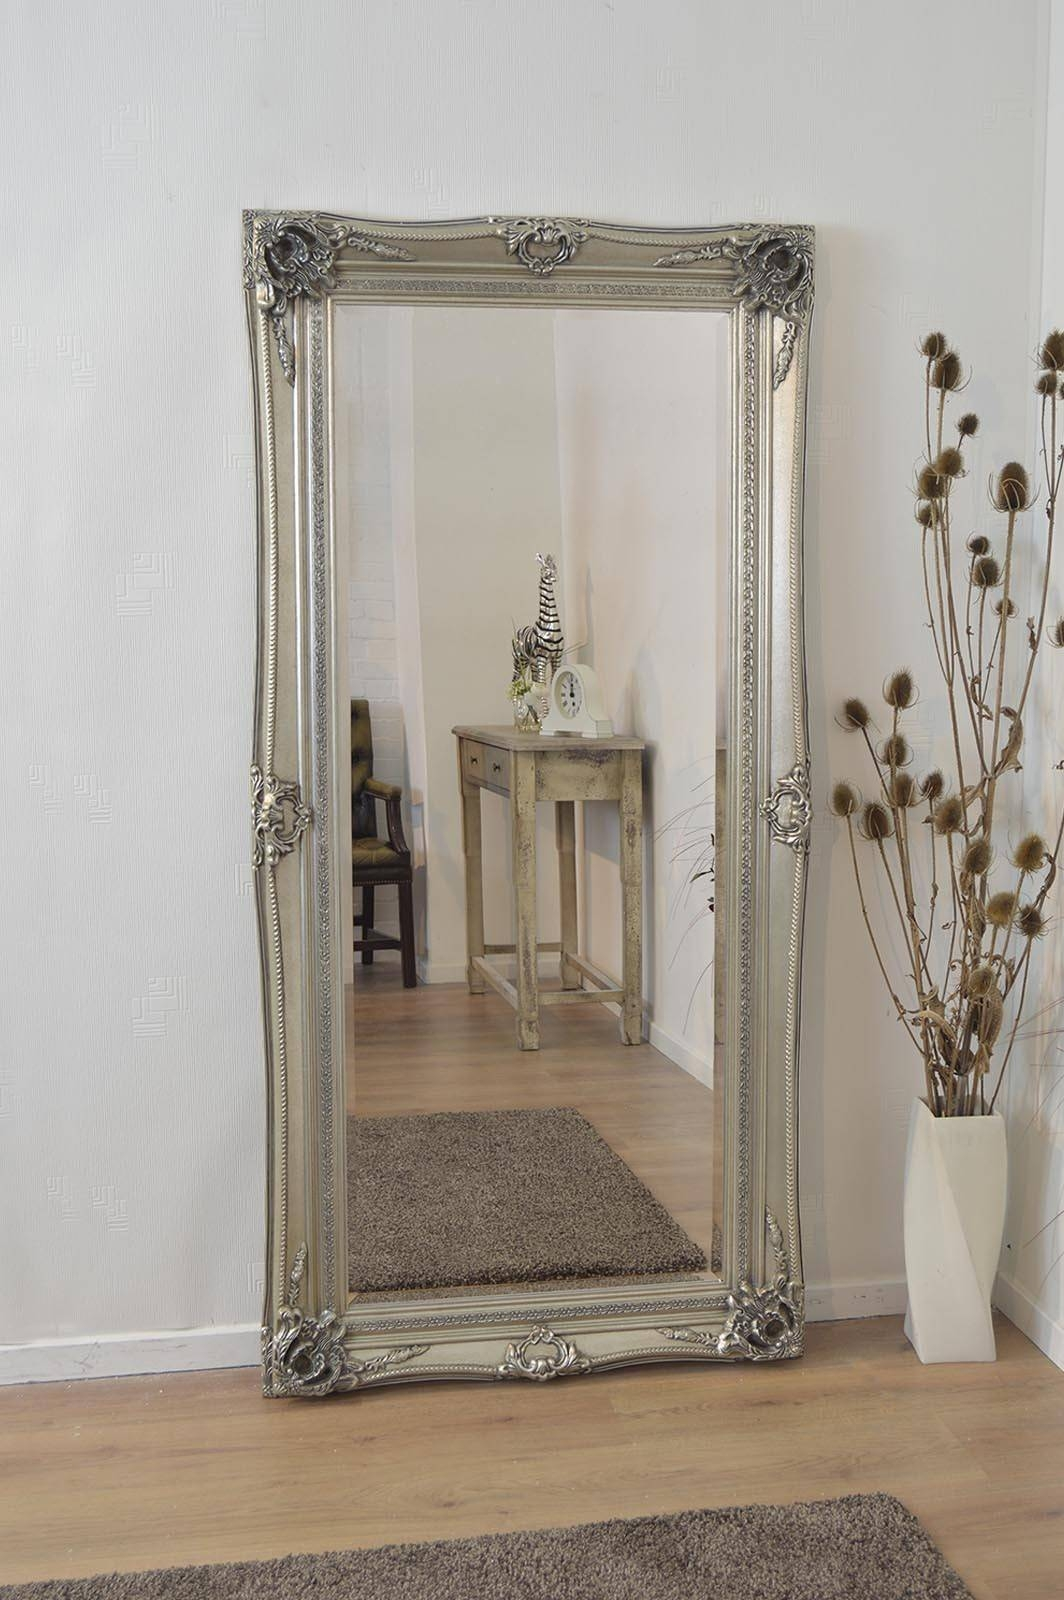 Large Antique Wall Mirror Ornate Frame Antique Ornate Wall Mirrors inside Ornate Full Length Wall Mirrors (Image 16 of 25)